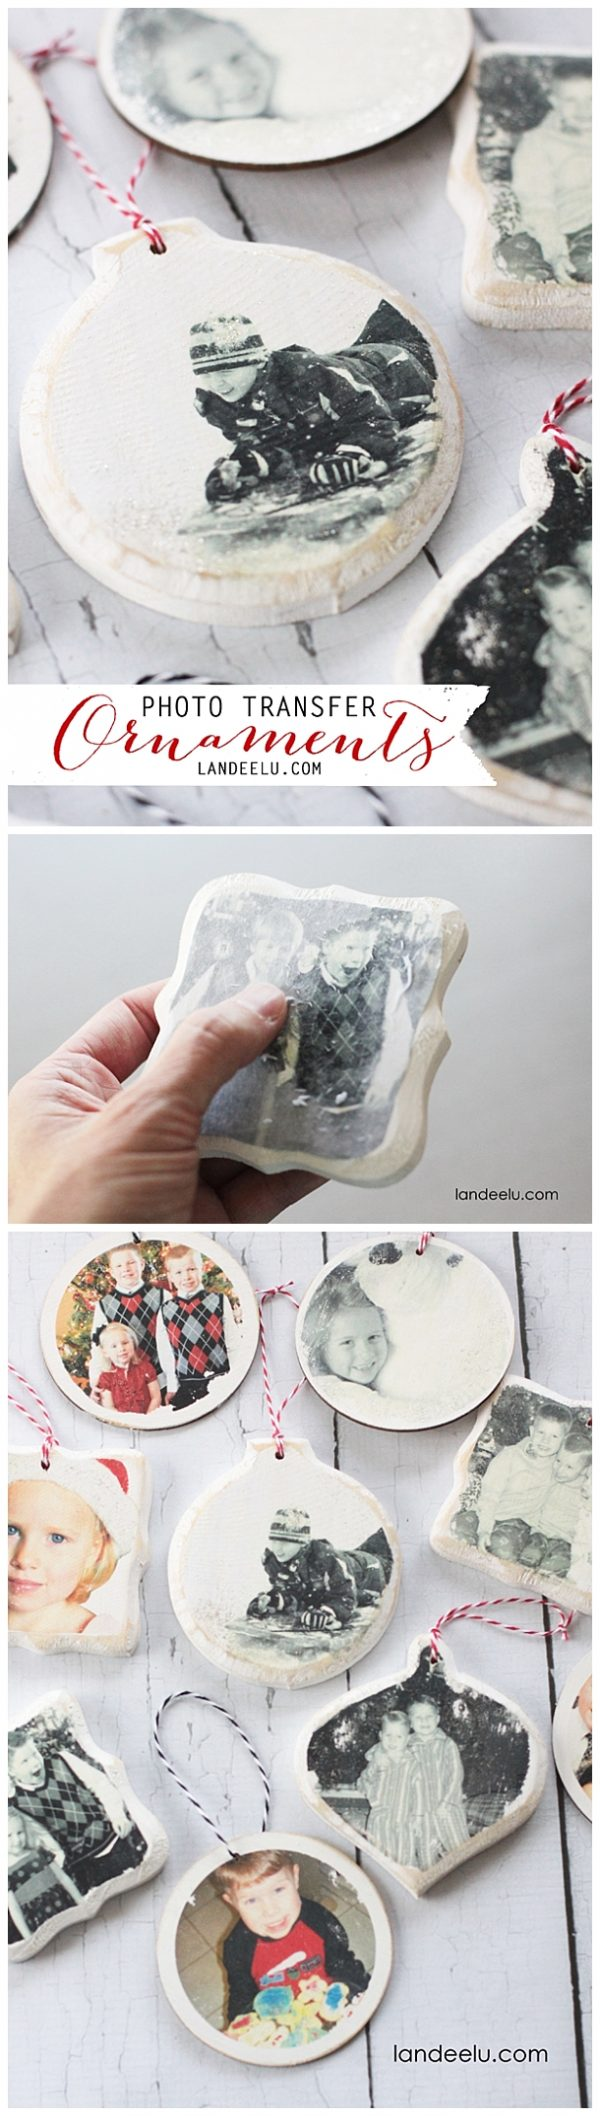 DIY Photo Transfer Christmas Tree Ornaments: Step by Step Tutorial | Landeelu - She walks you through the step by step no fail process of creating these darling keepsakes!